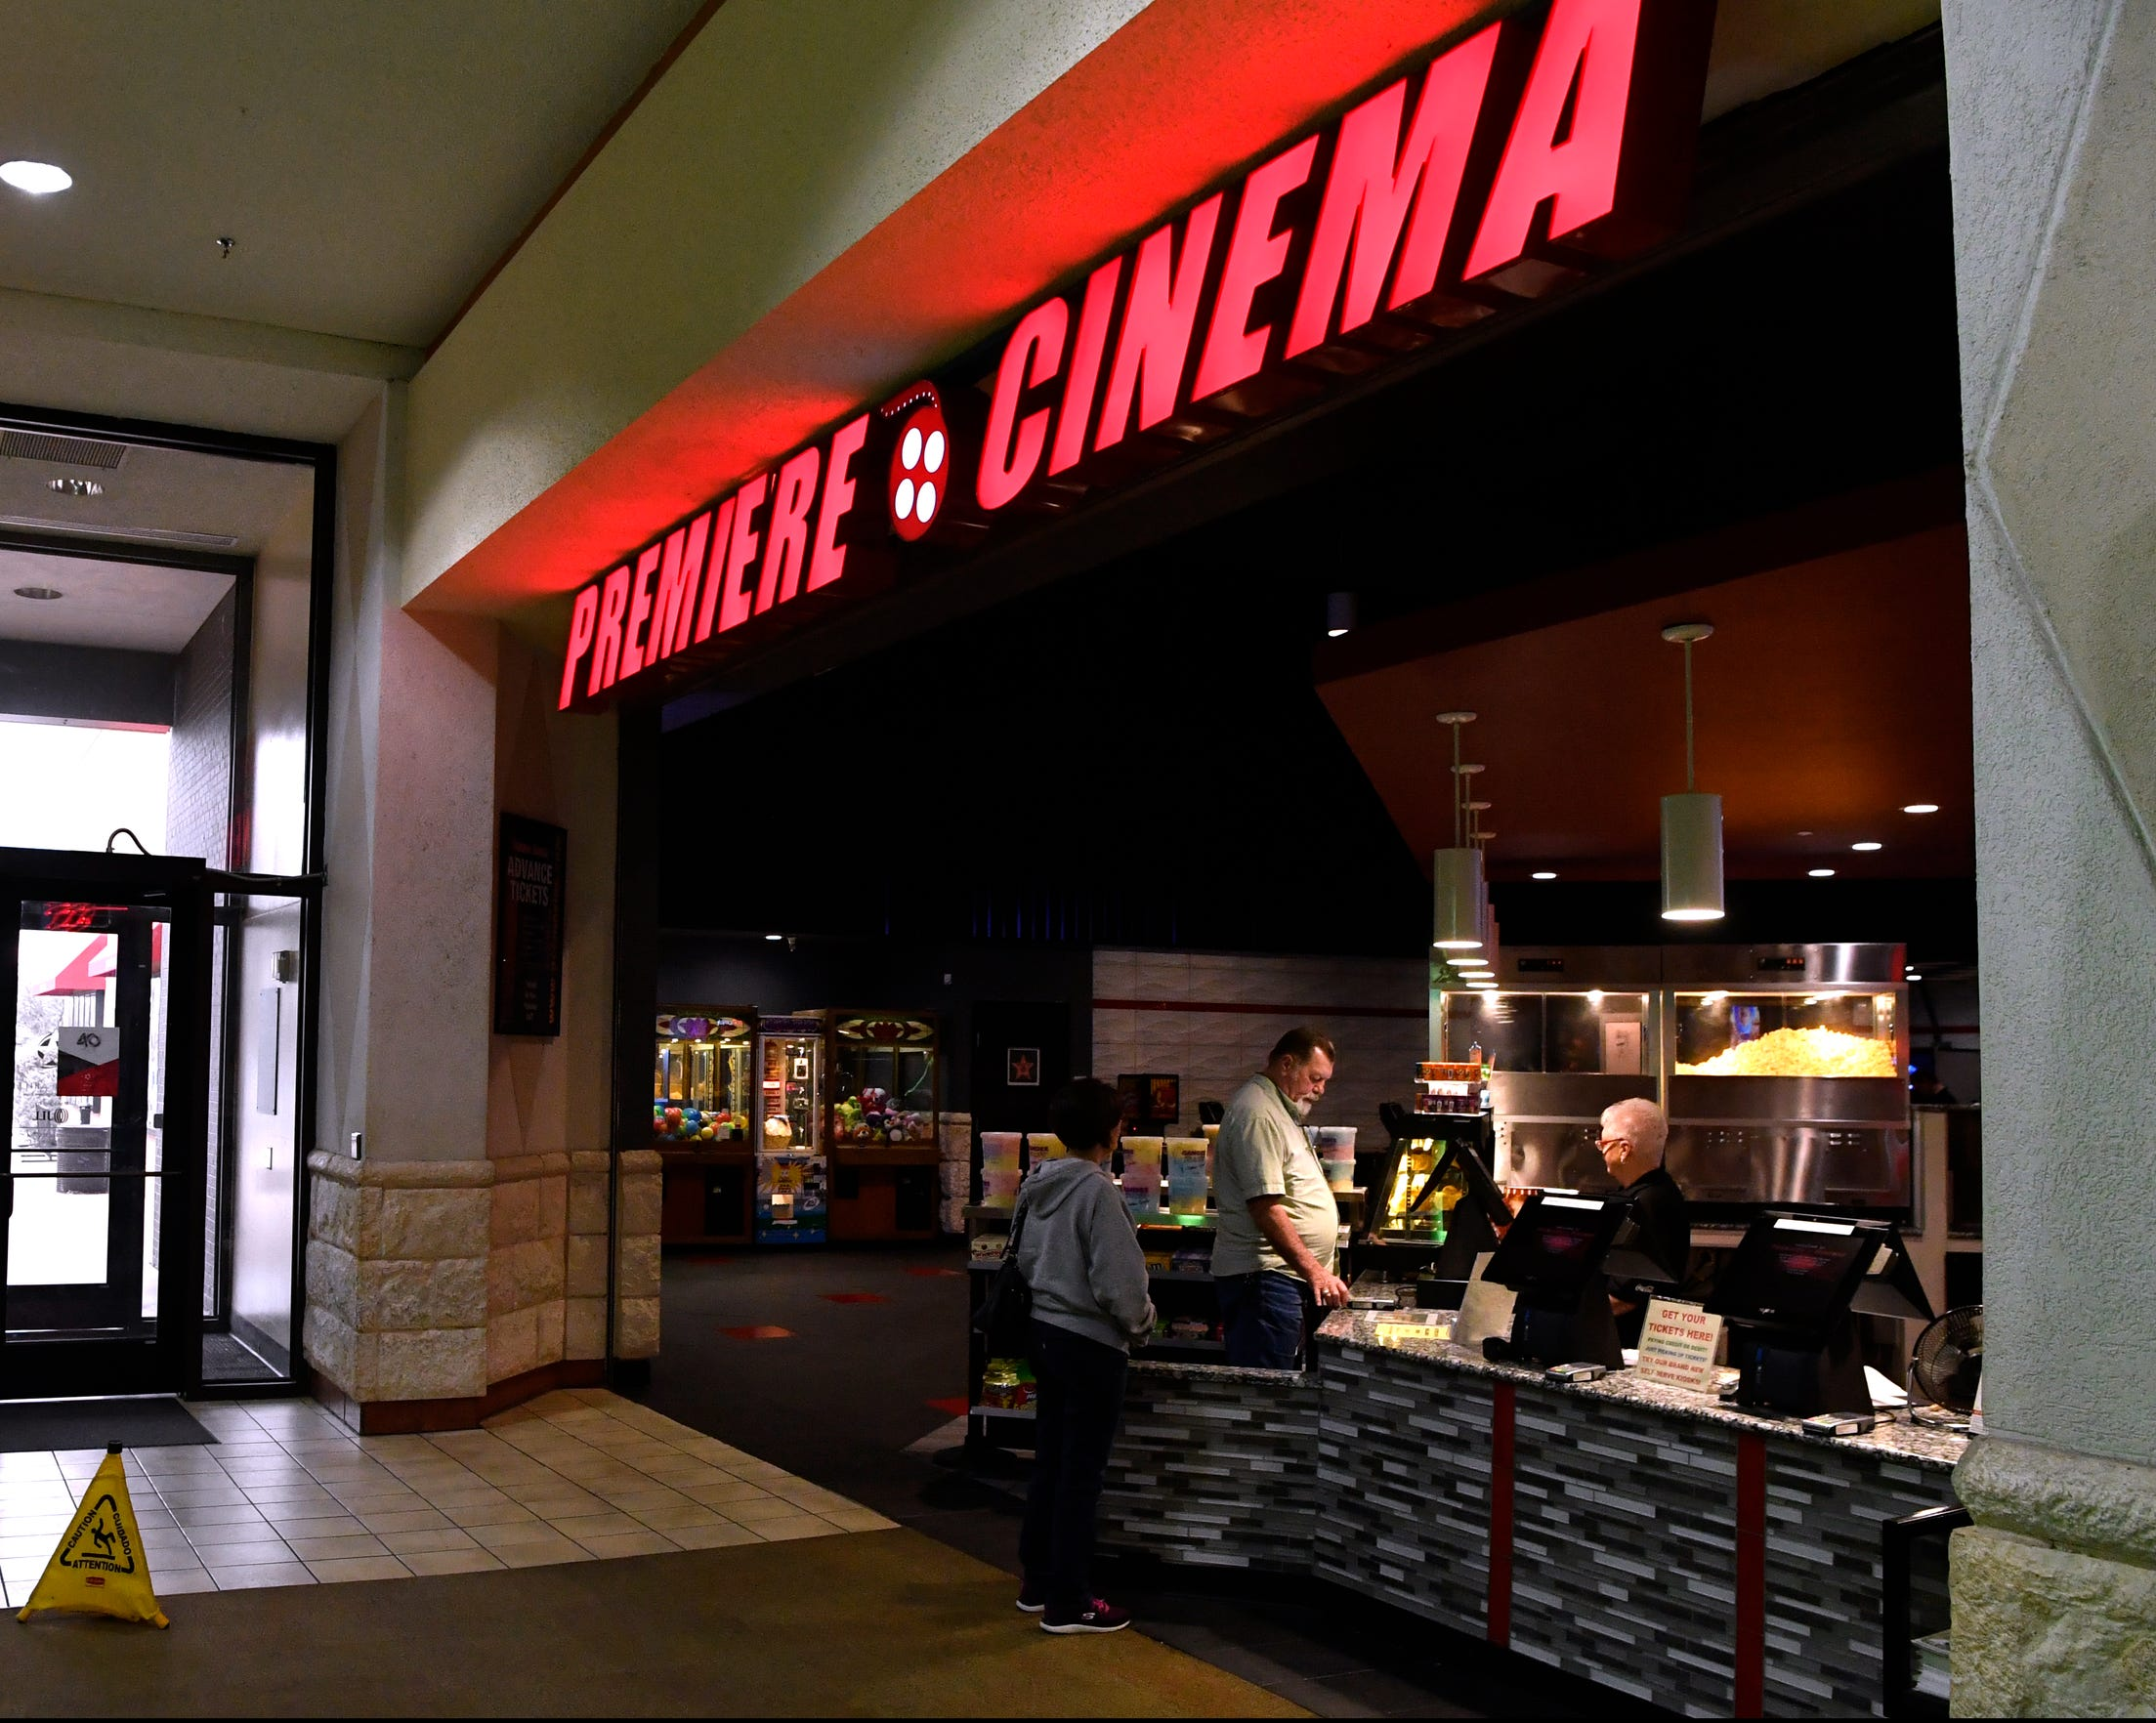 Patrons buy popcorn at Premiere Lux Cine 10 at the Mall of Abilene. There has been a movie theater at the mall since it opened 40 years ago and mall officials said it has been a feature they've worked hard on keeping as theaters modernized.